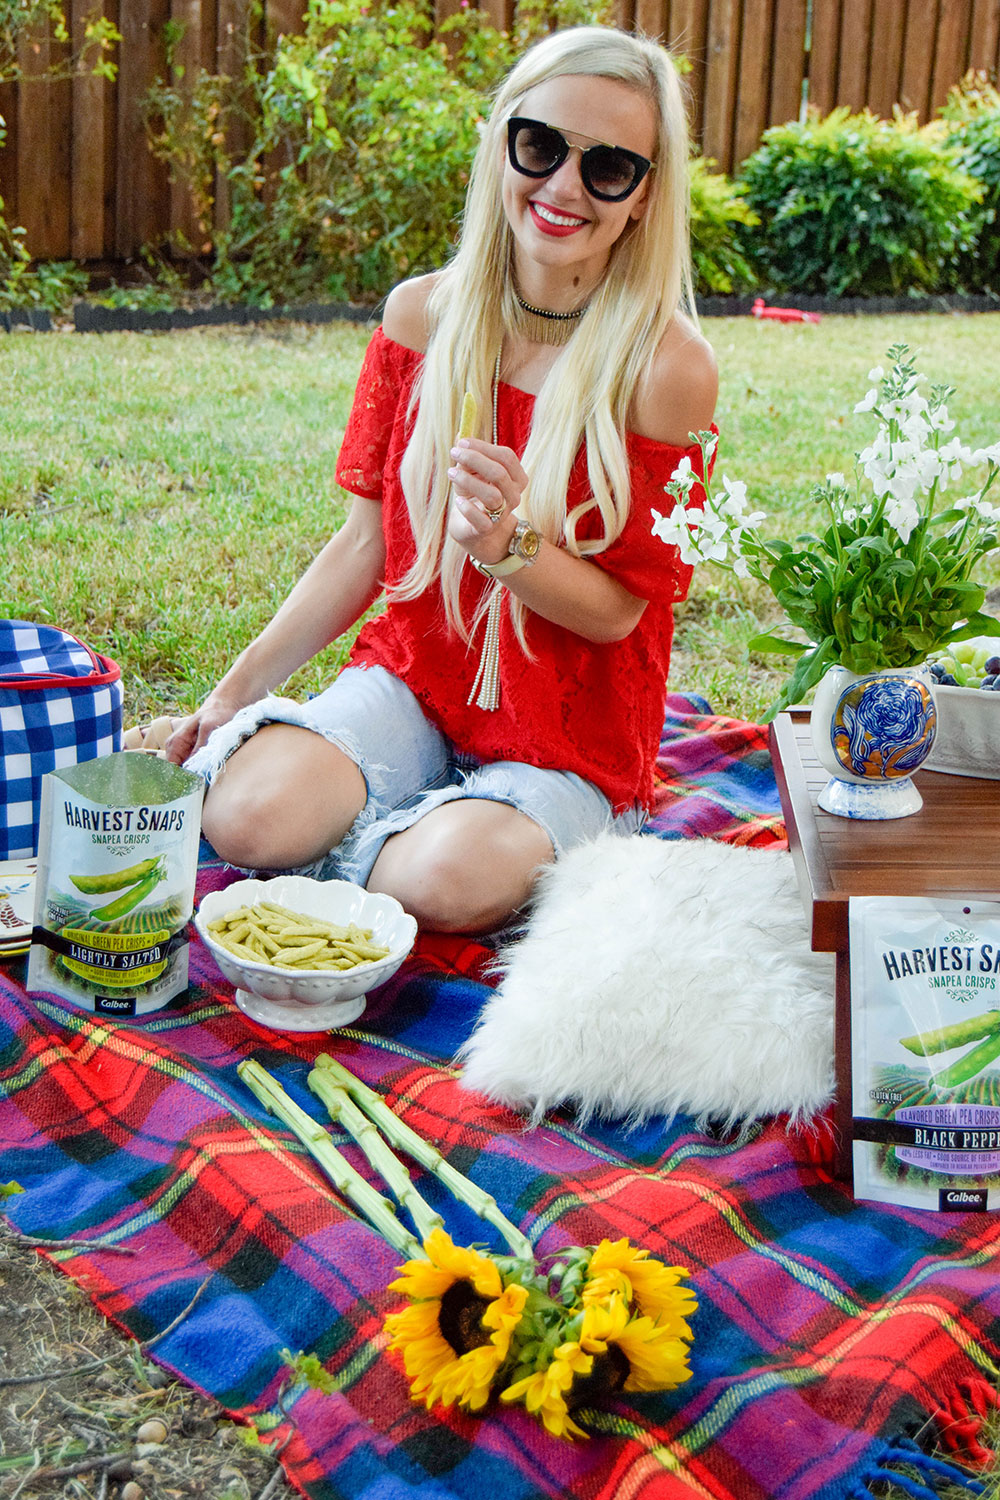 vandi-fair-dallas-fashion-blog-lauren-vandiver-southern-texas-lifestyle-fitness-blogger-healthy-snacking-snacks-harvest-snaps-snap-pea-crisps-picnic-12